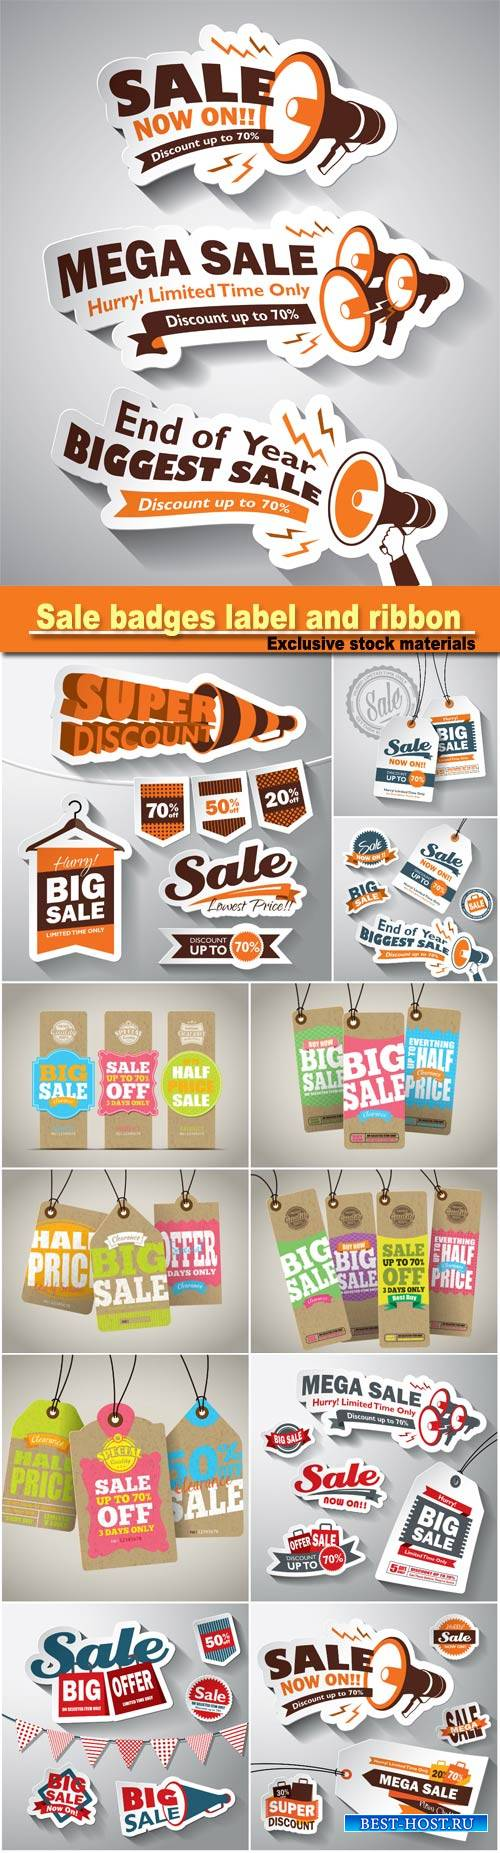 Set sale badges label and ribbon, vector tag illustration